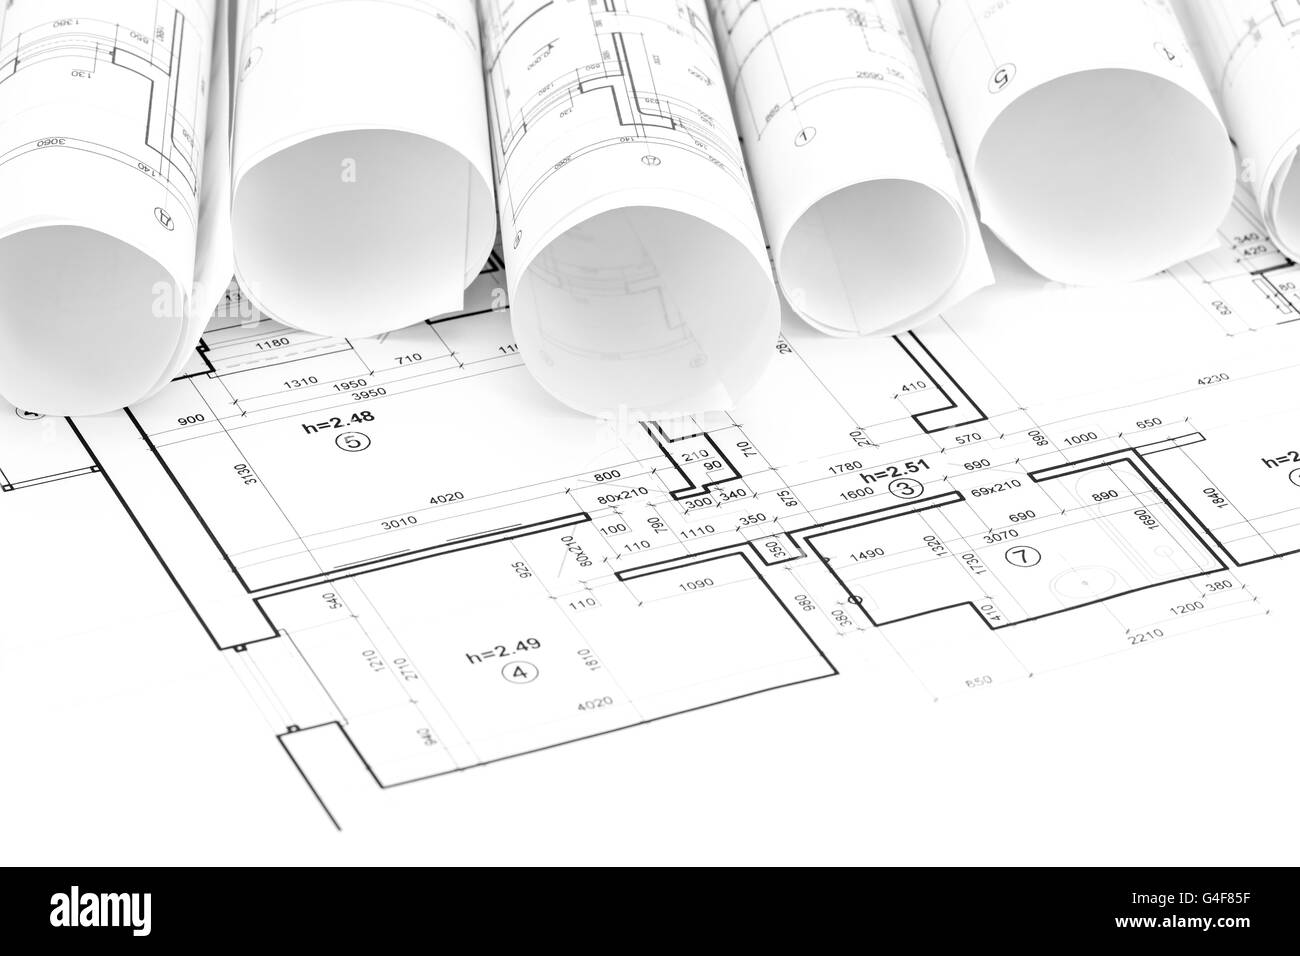 Architectural blueprint rolls and floor plans on desk stock photo architectural blueprint rolls and floor plans on desk malvernweather Image collections